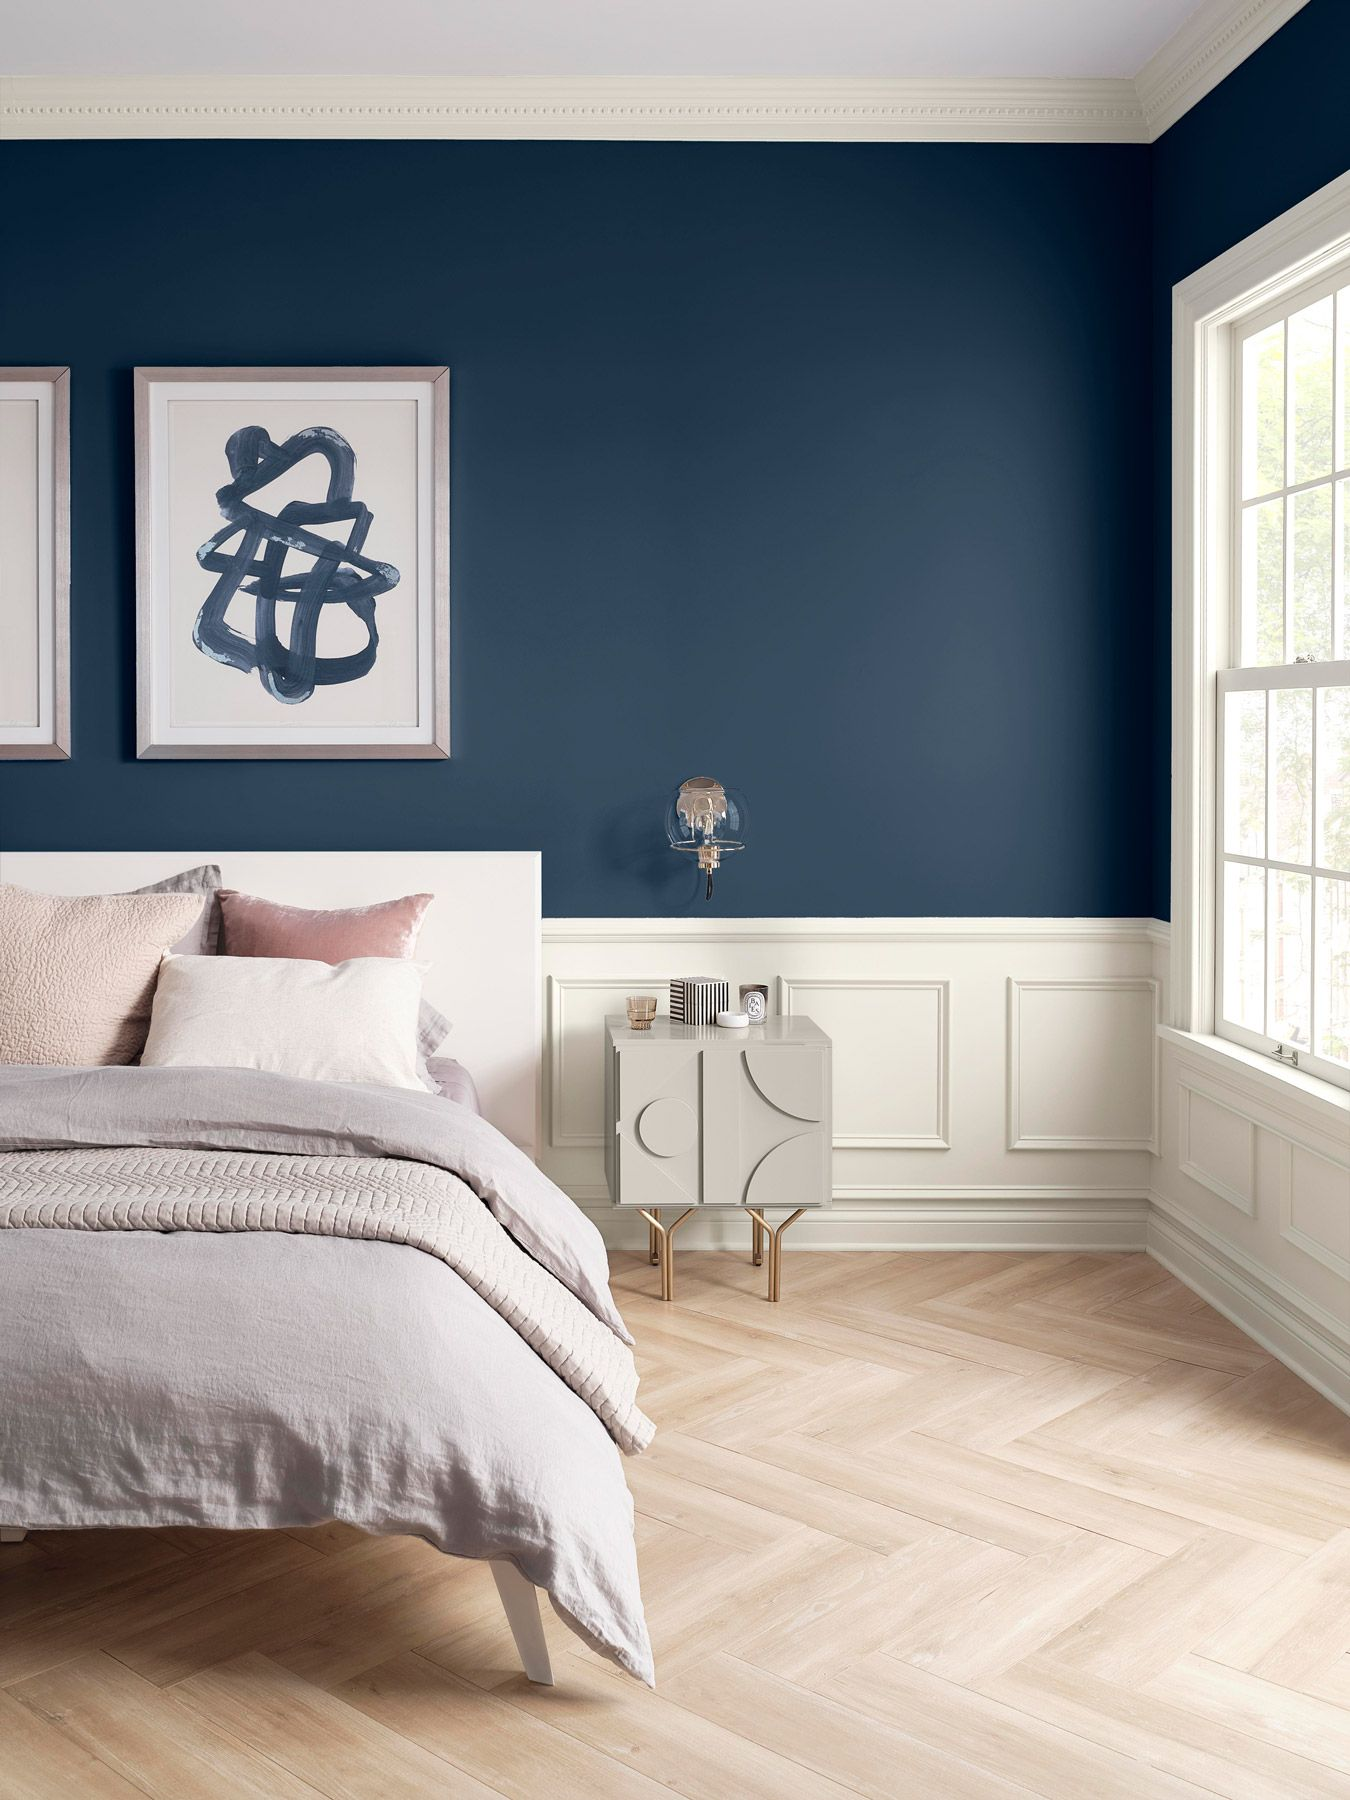 sherwin williams just announced its color of the year 2020 on designers most used wall color id=31296